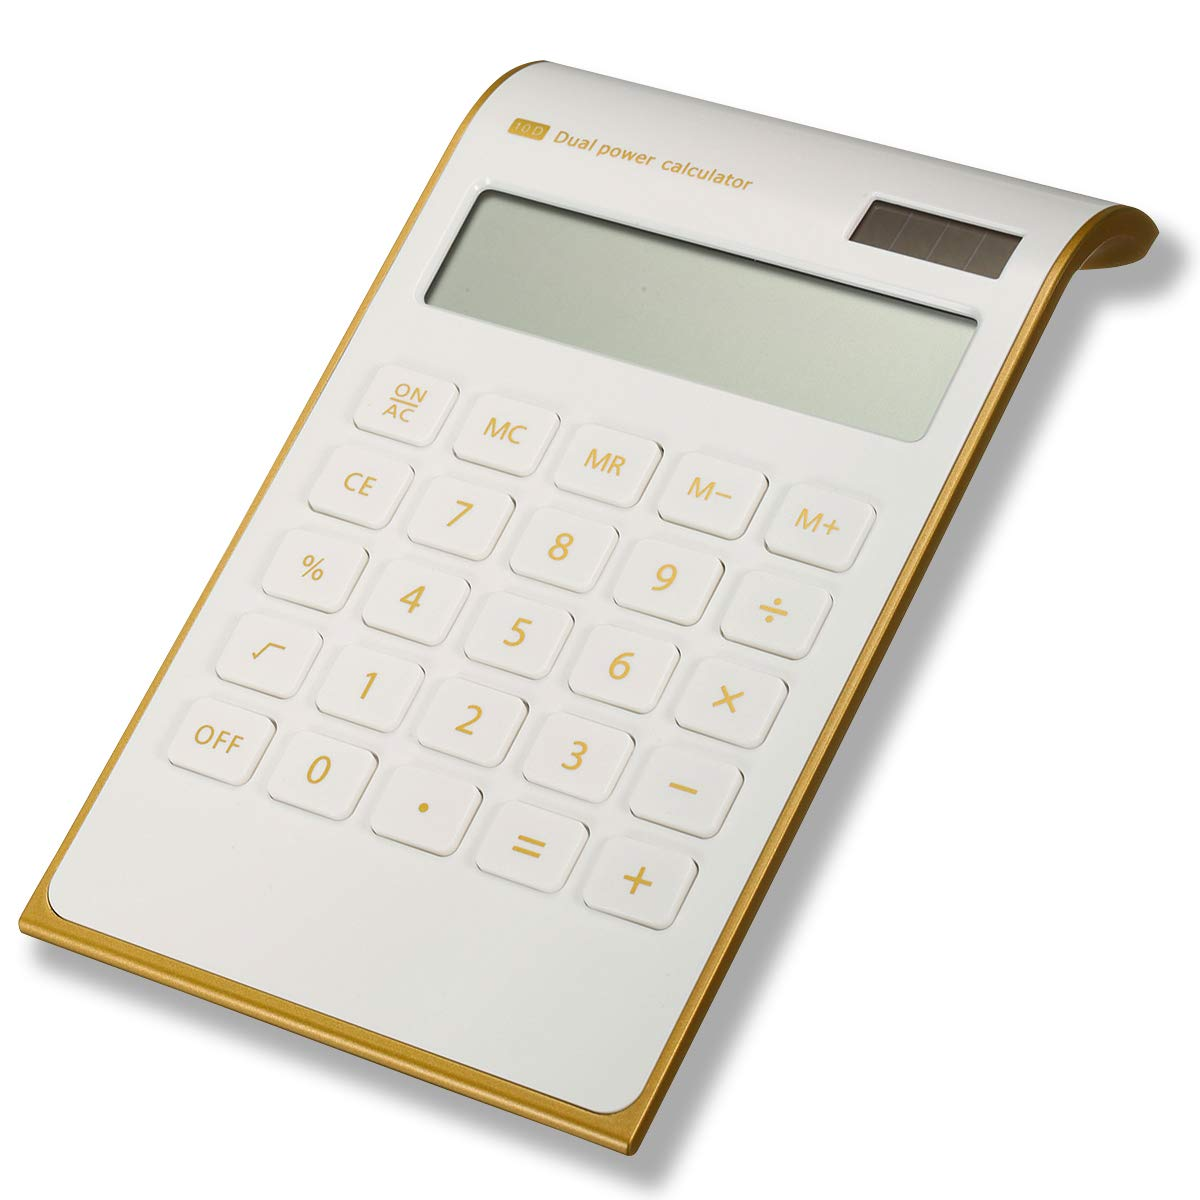 Caveen Calculator Ultra Thin Solar Power Calculator for Home Office Desktop Calculator Tilted LCD Display Business Calculator (Basic, White)